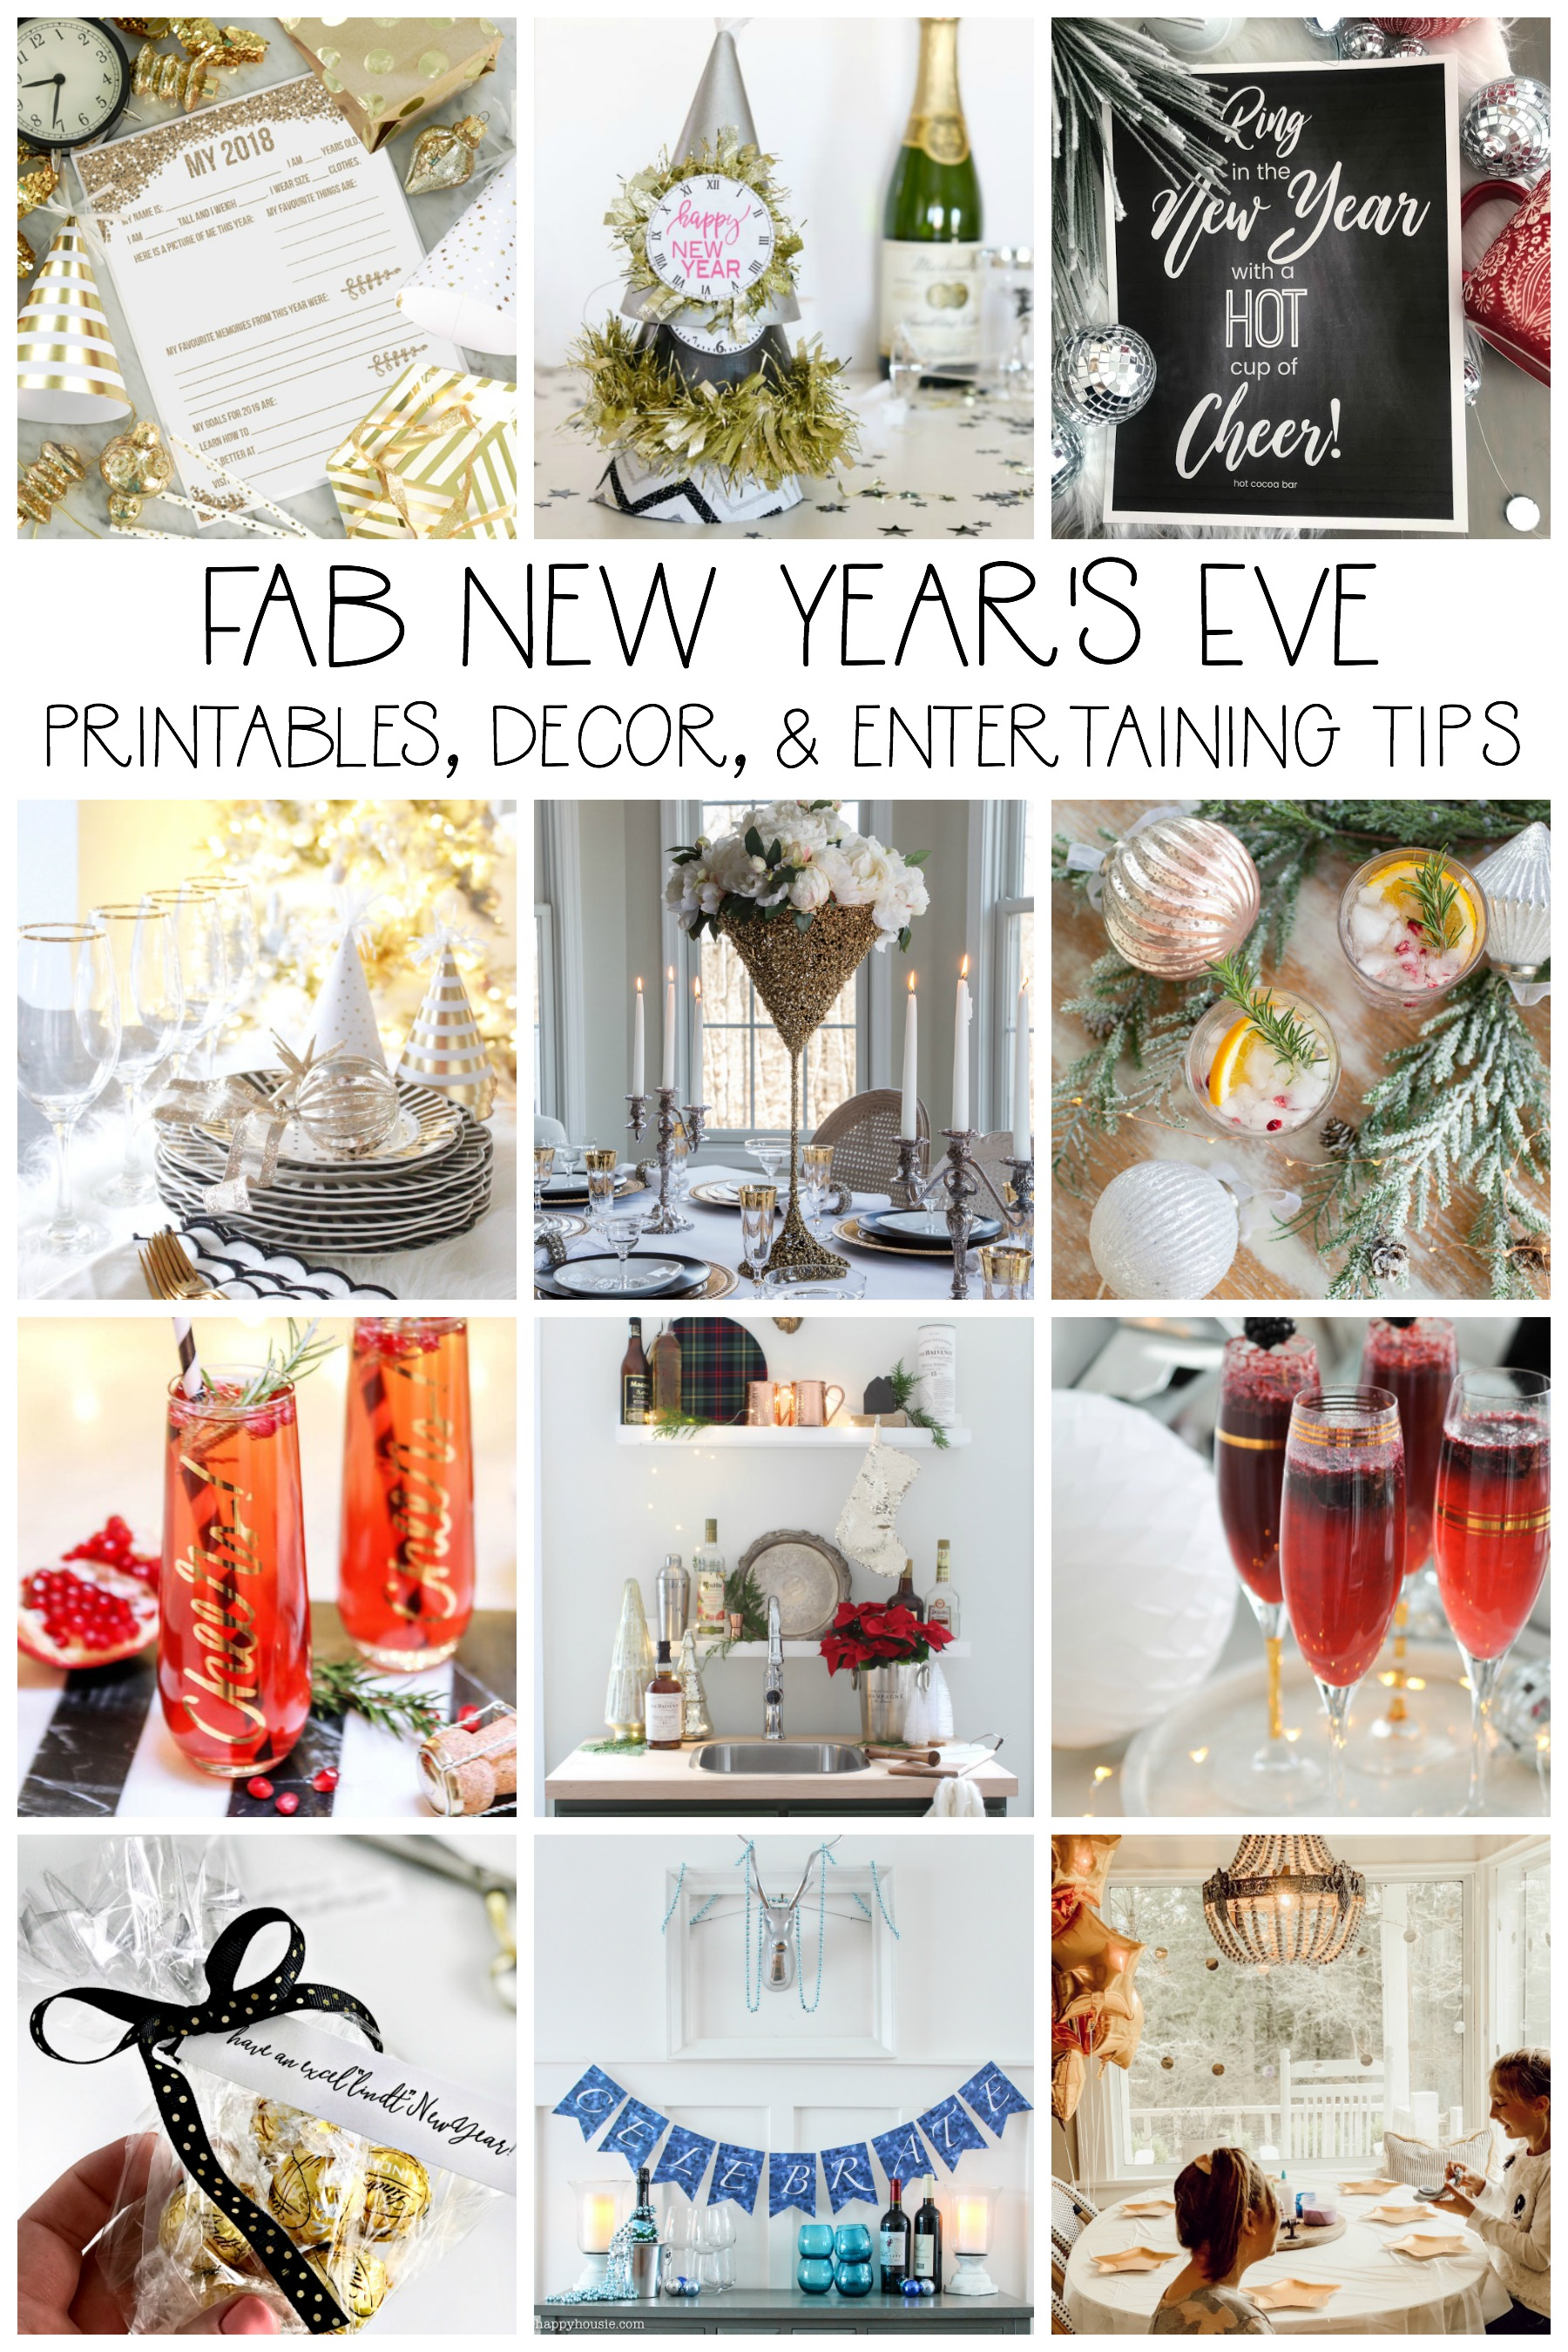 and today im joined by some friends who are also sharing their fabulous new years eve entertaining ideas recipes and printables with you